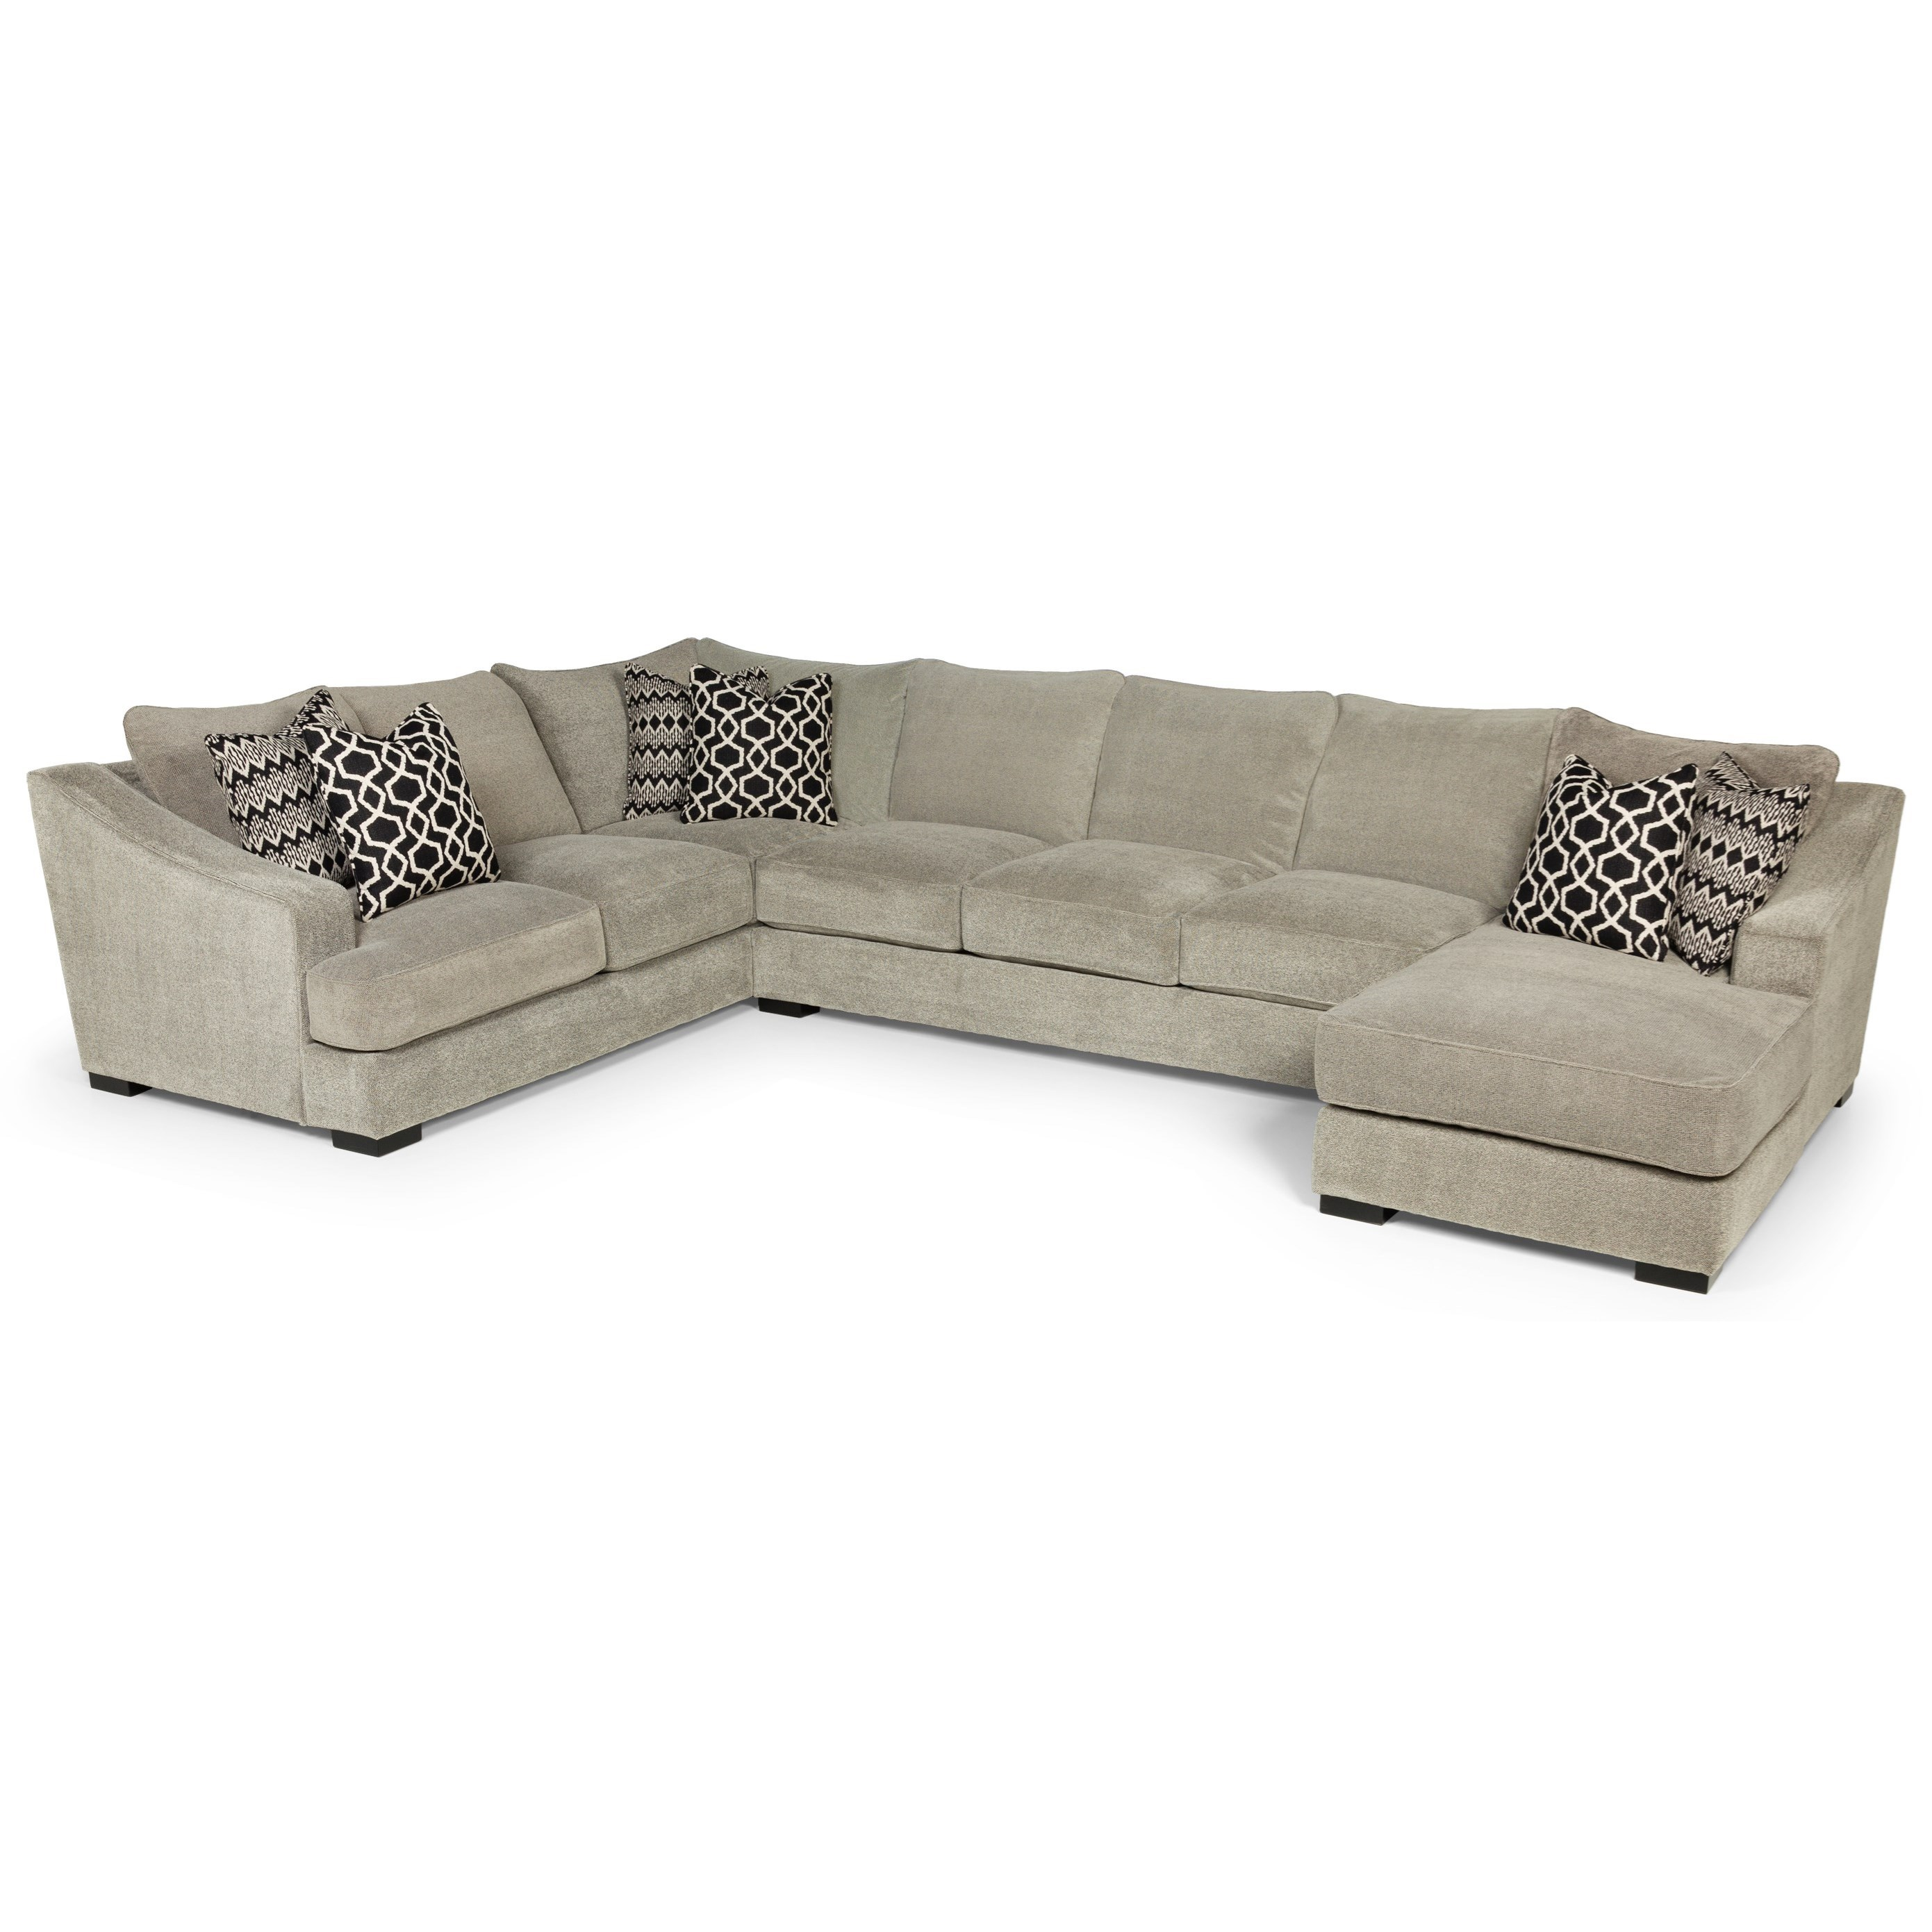 338 3 Pc Sectional Sofa by Stanton at Rife's Home Furniture